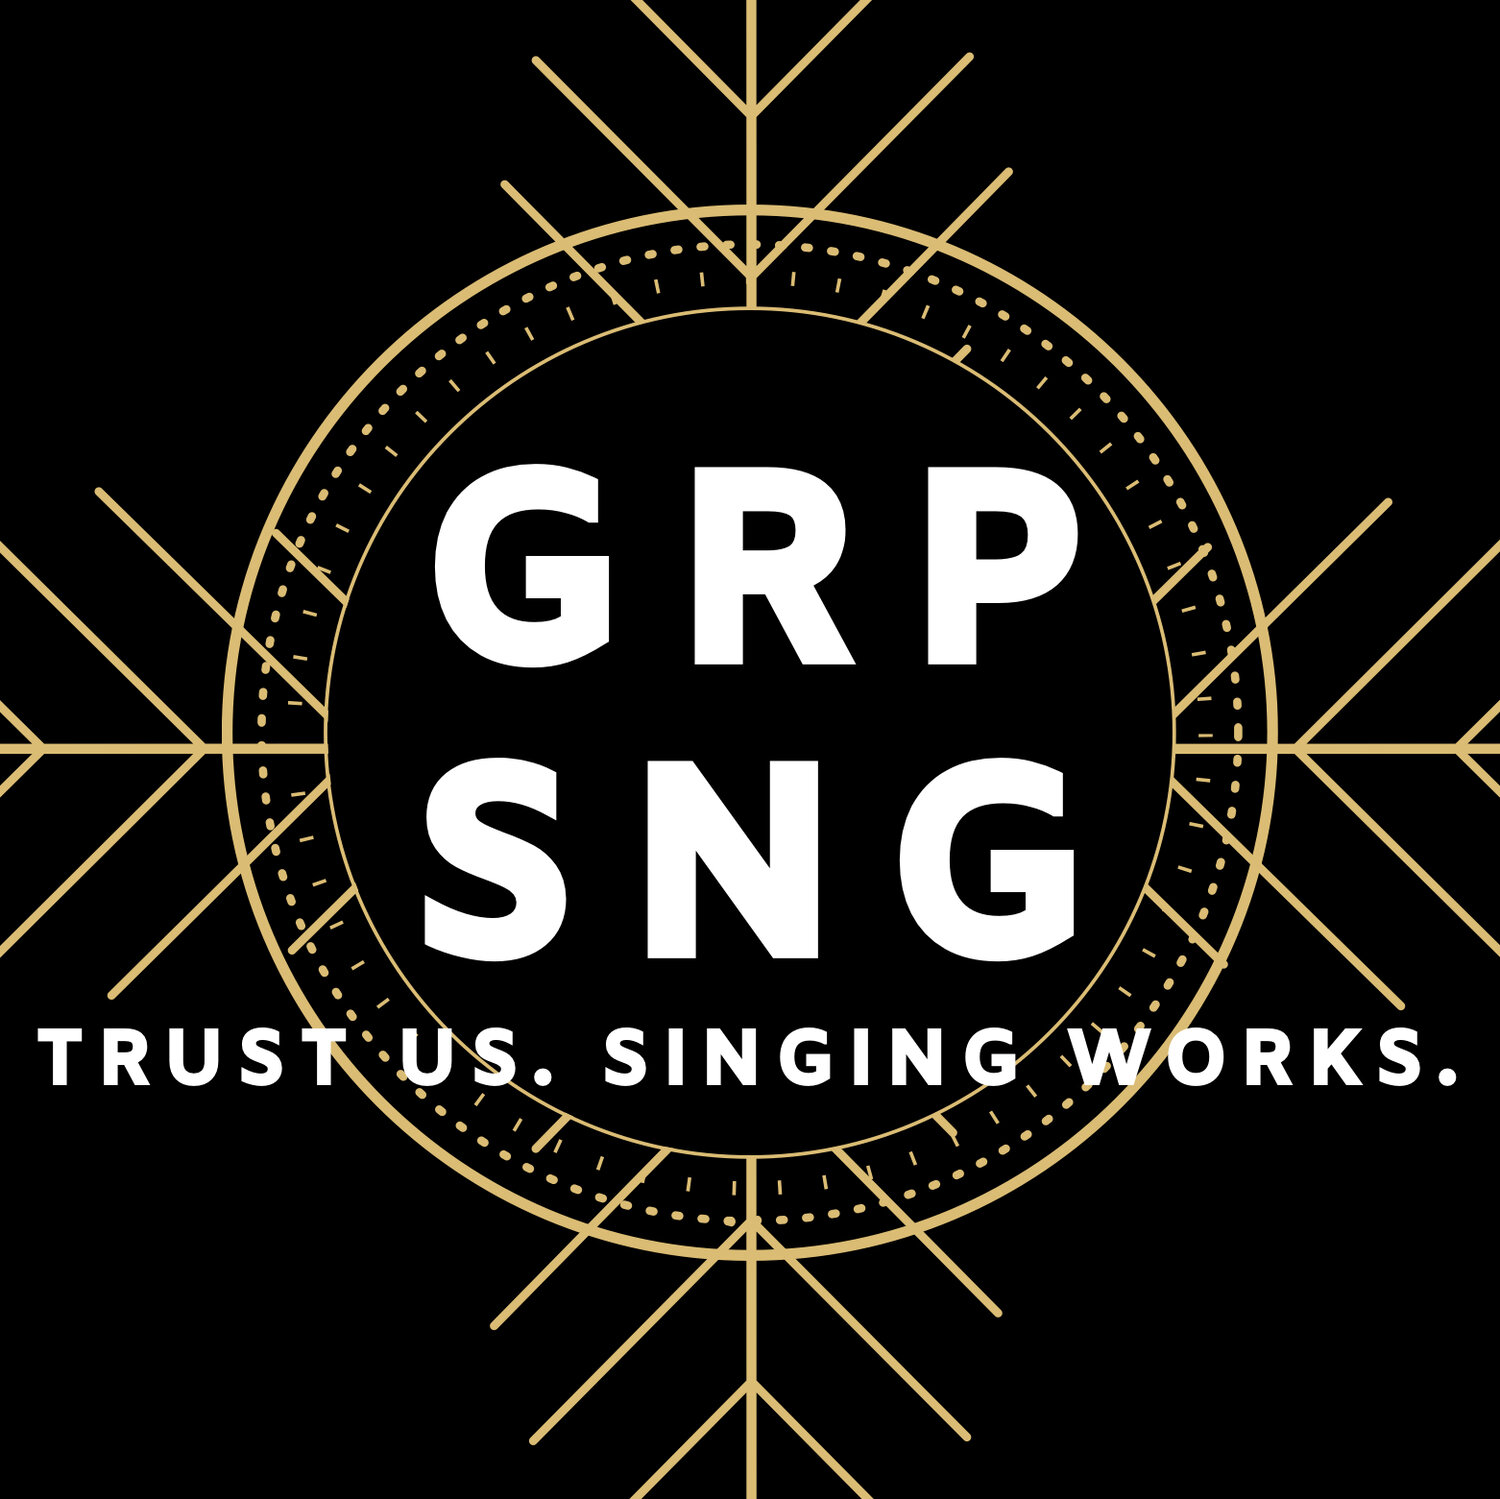 GRPSNG